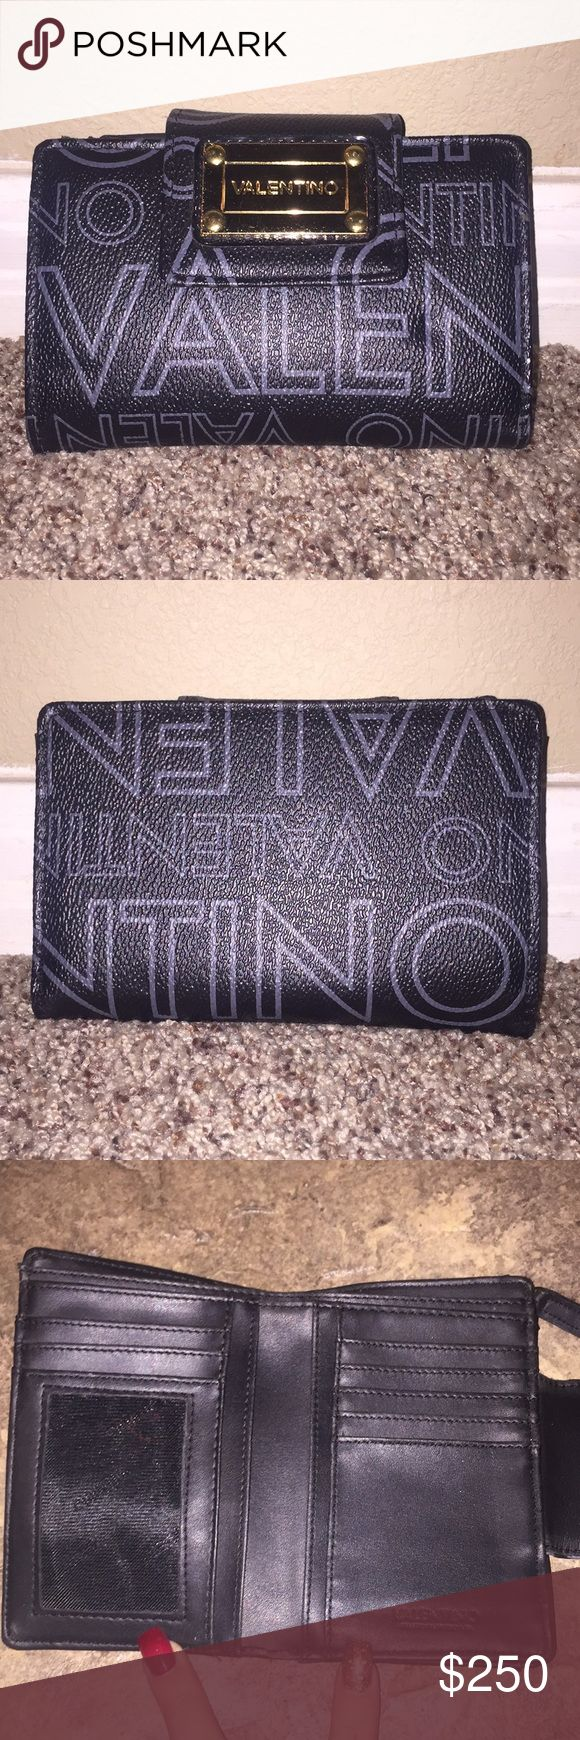 Authentic black Valentino wallet 😍😍 100% authentic. Amazing condition. Only flaw is minor wear on hardware. Other then that it's perfect . Valentino Bags Wallets